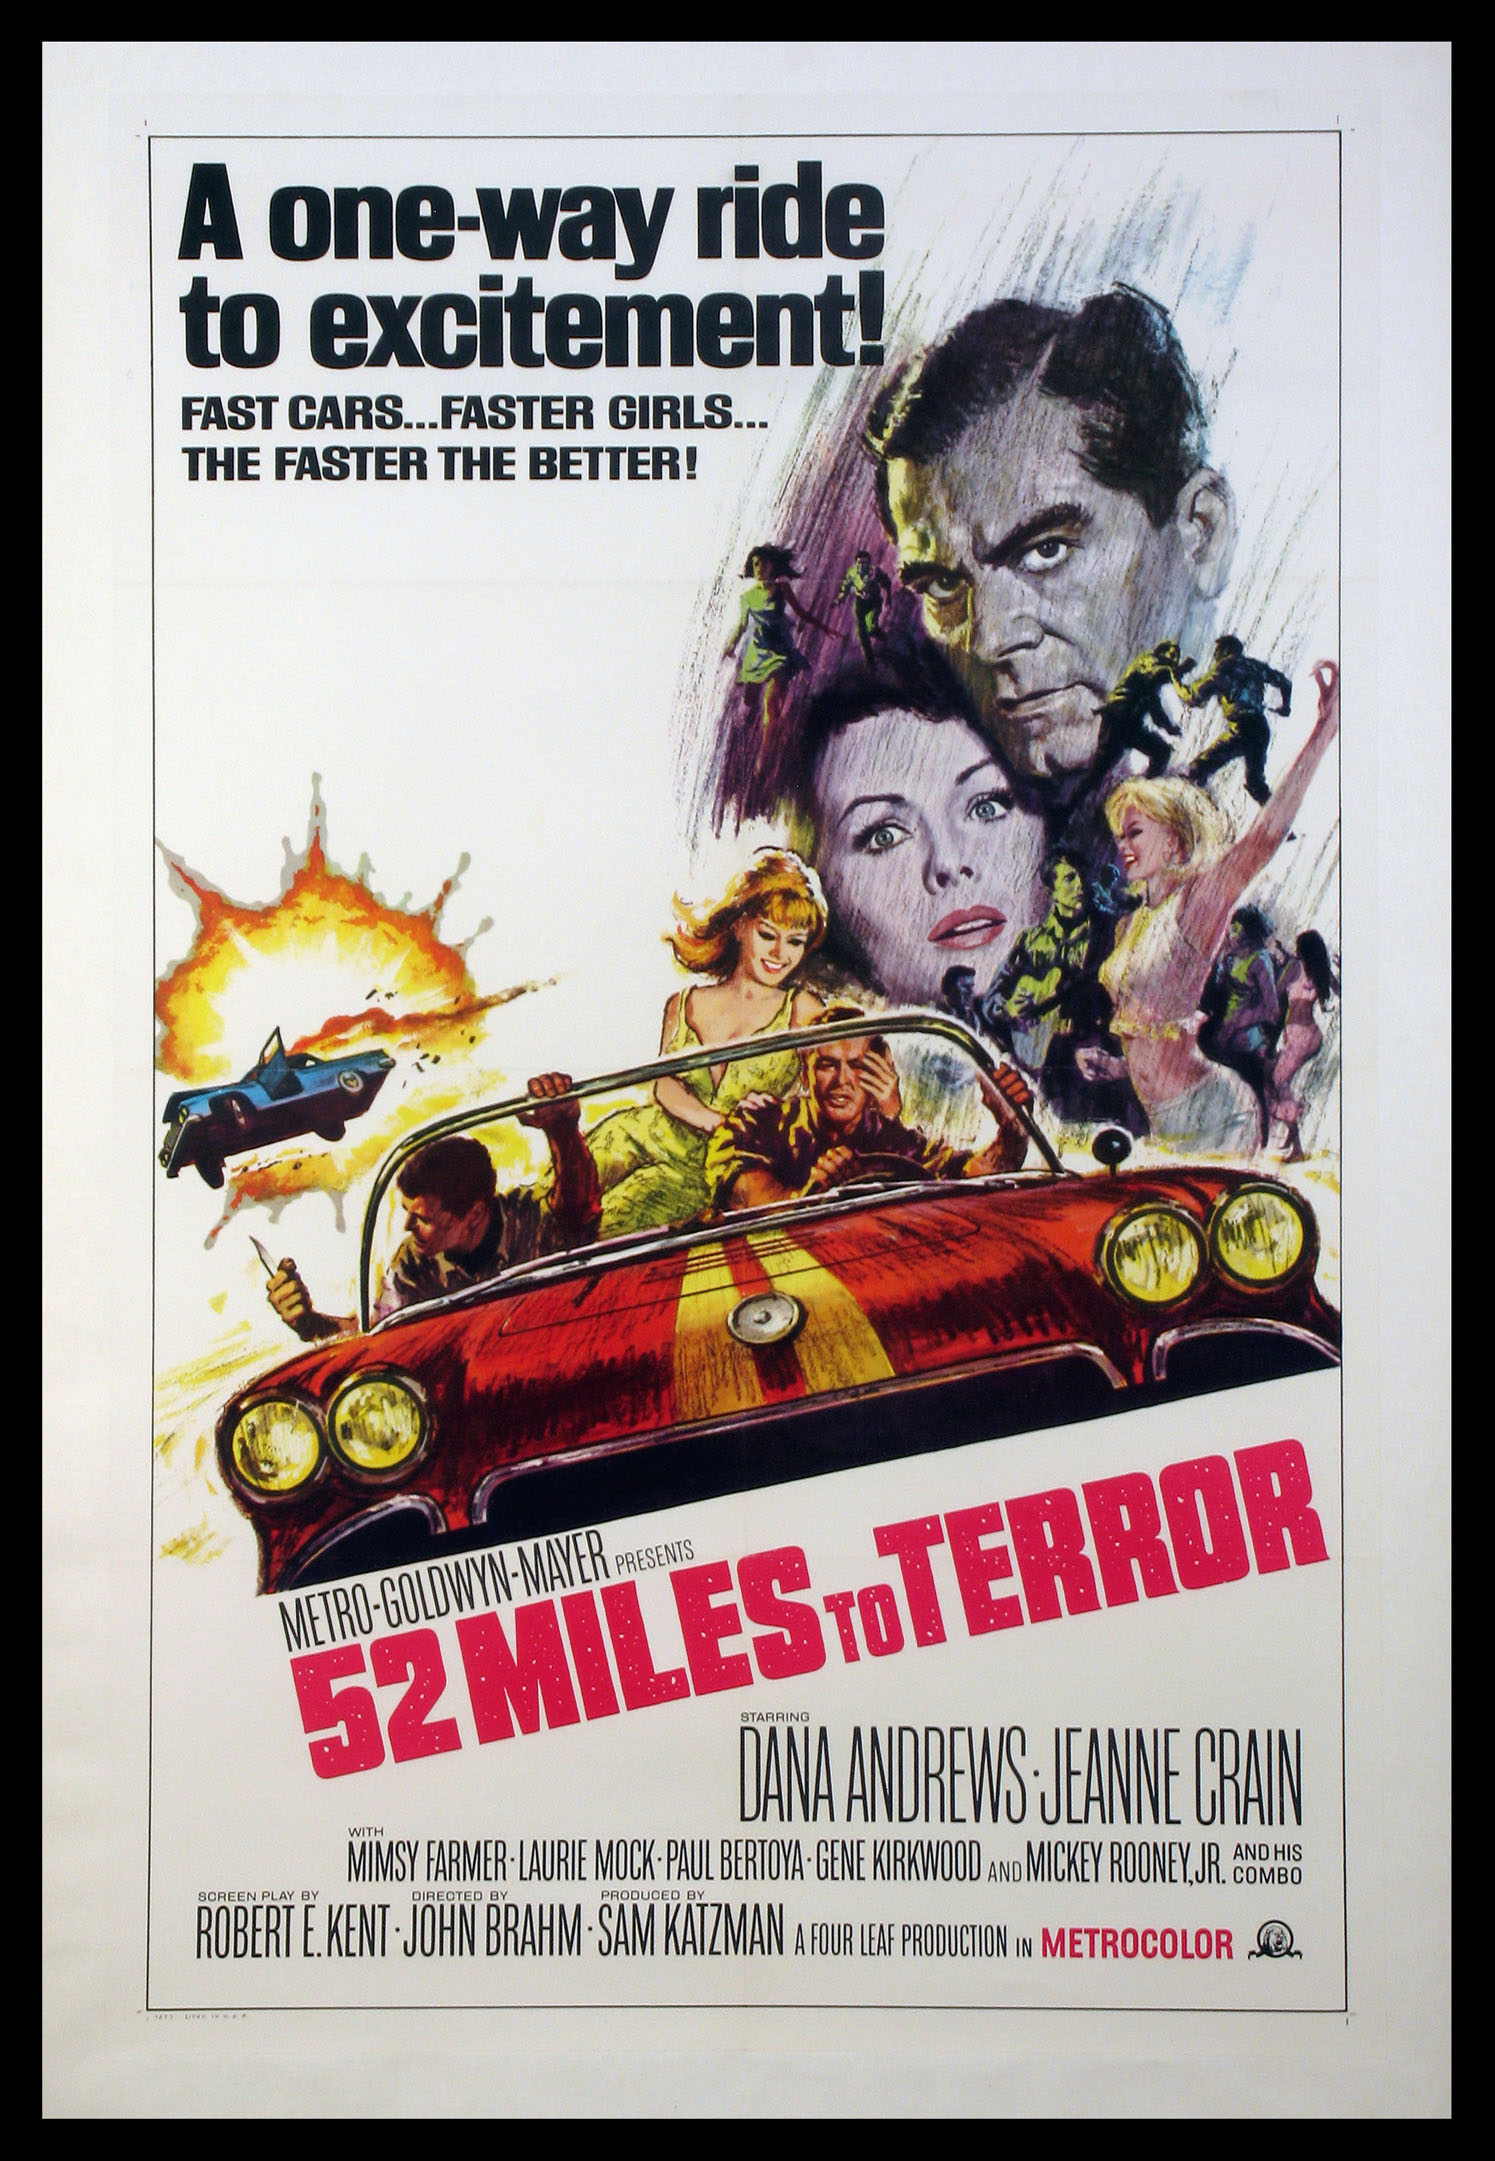 52 MILES TO TERROR (AKA HOT RODS TO HELL) @ FilmPosters.com